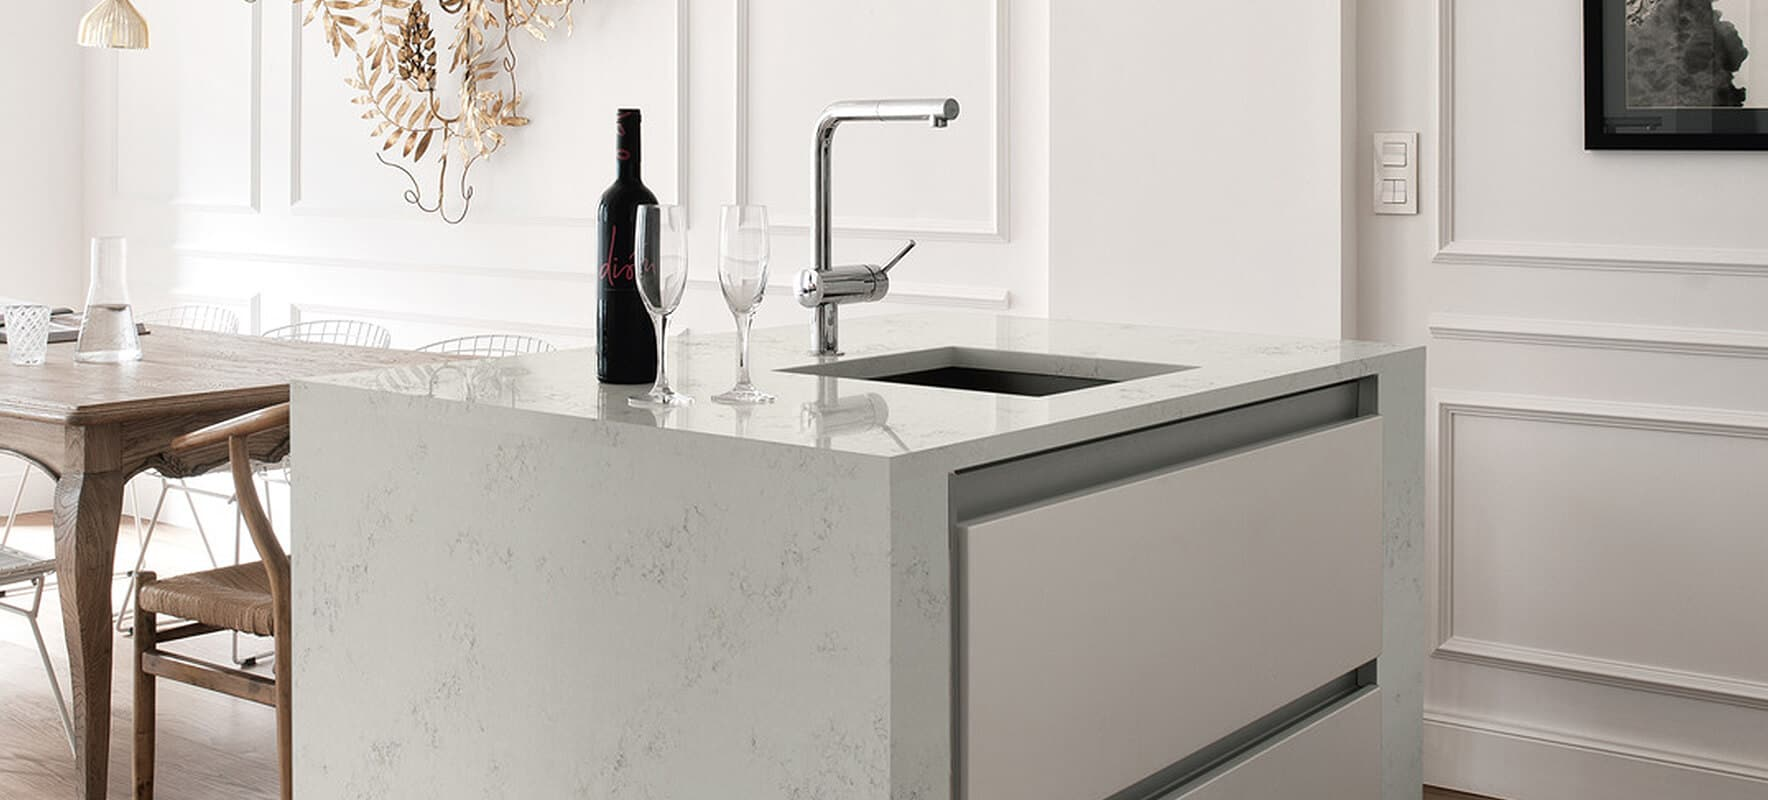 How To Revitalize Corian Countertops Cutting Edge Countertops